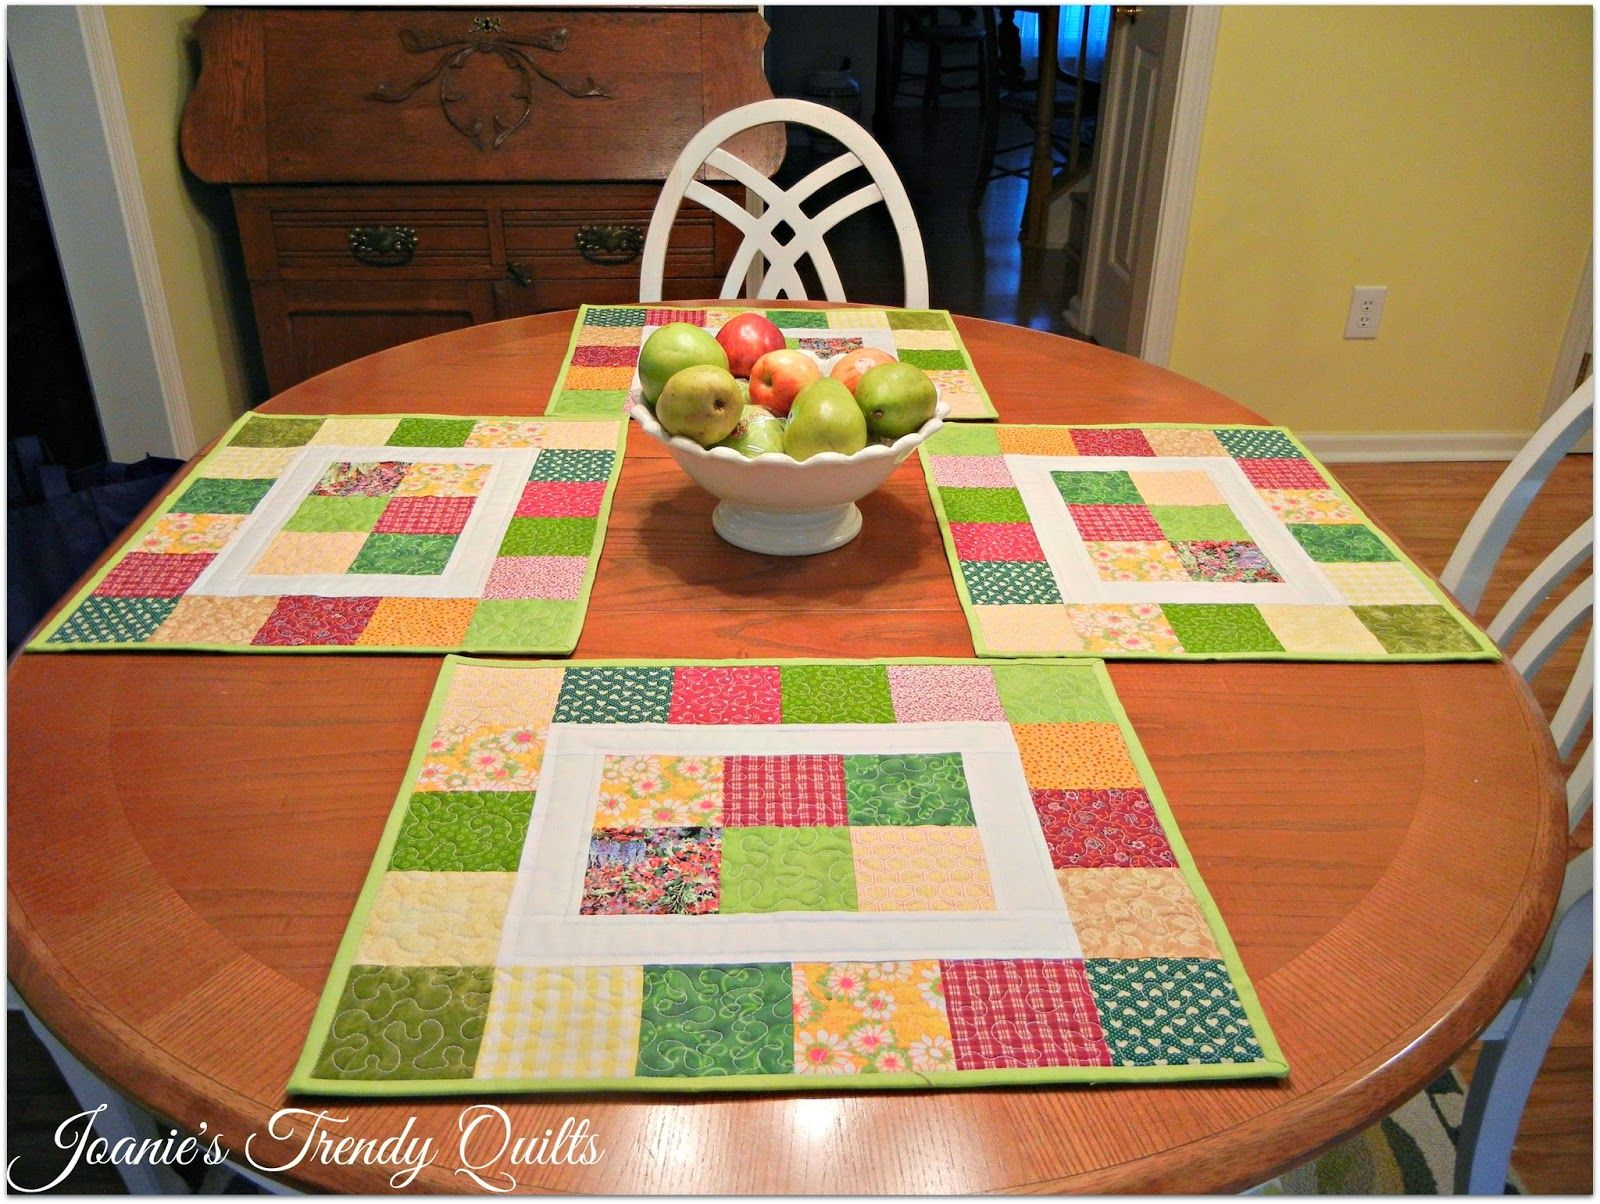 ~ Joanie's Trendy Quilts ~